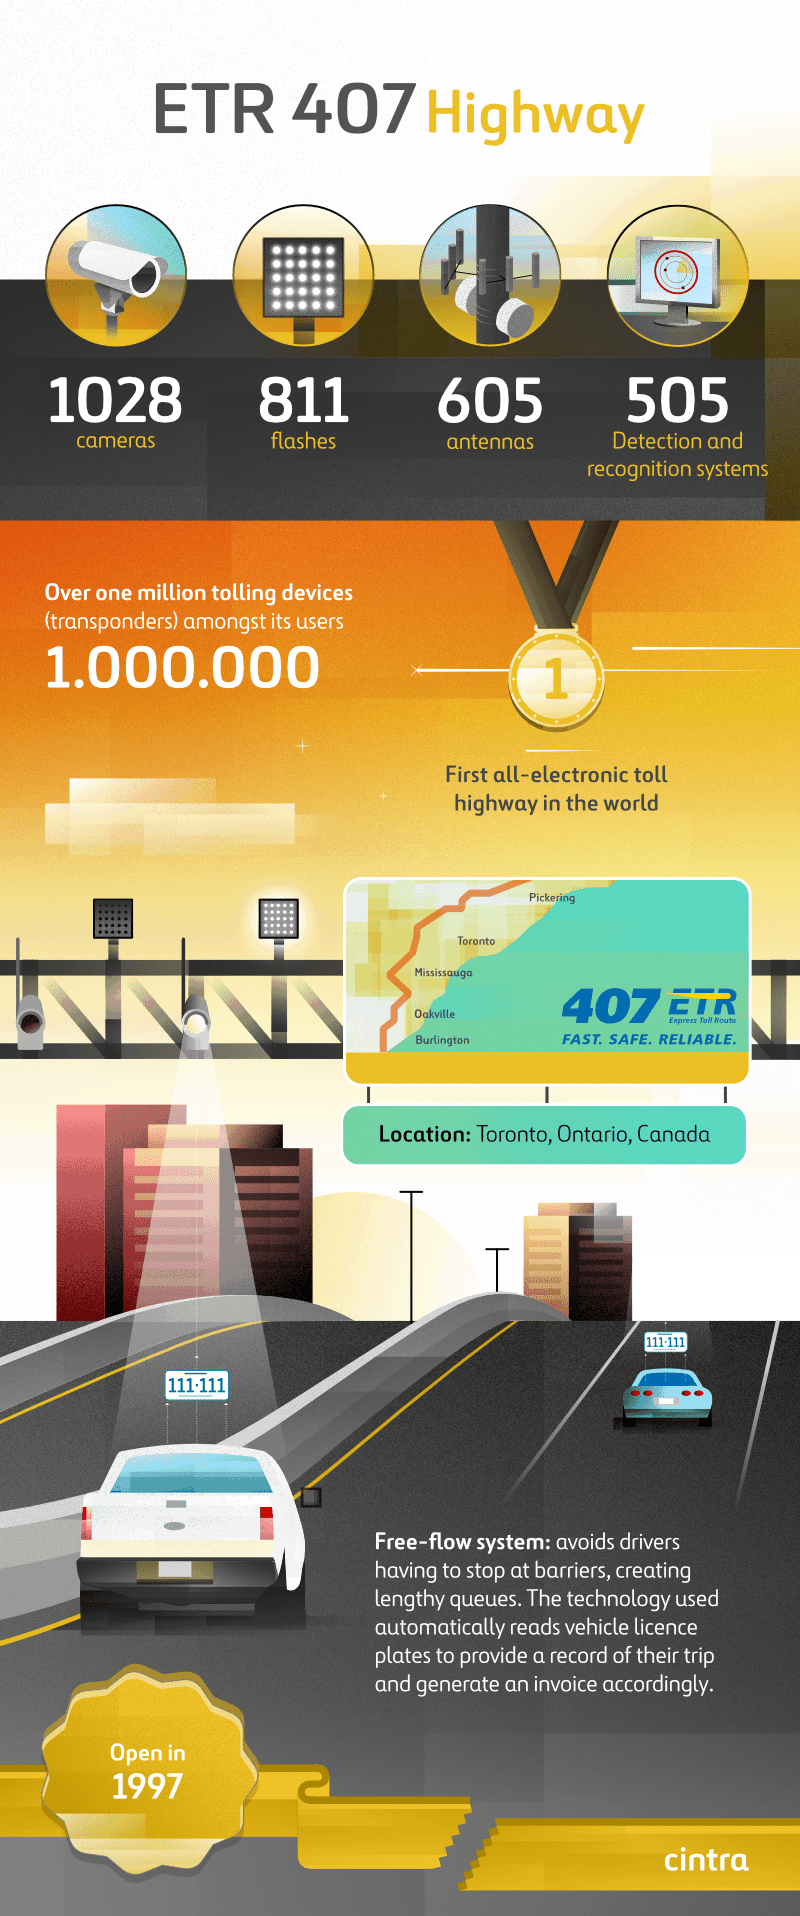 Infography of the 407 ETR Highway in Canada